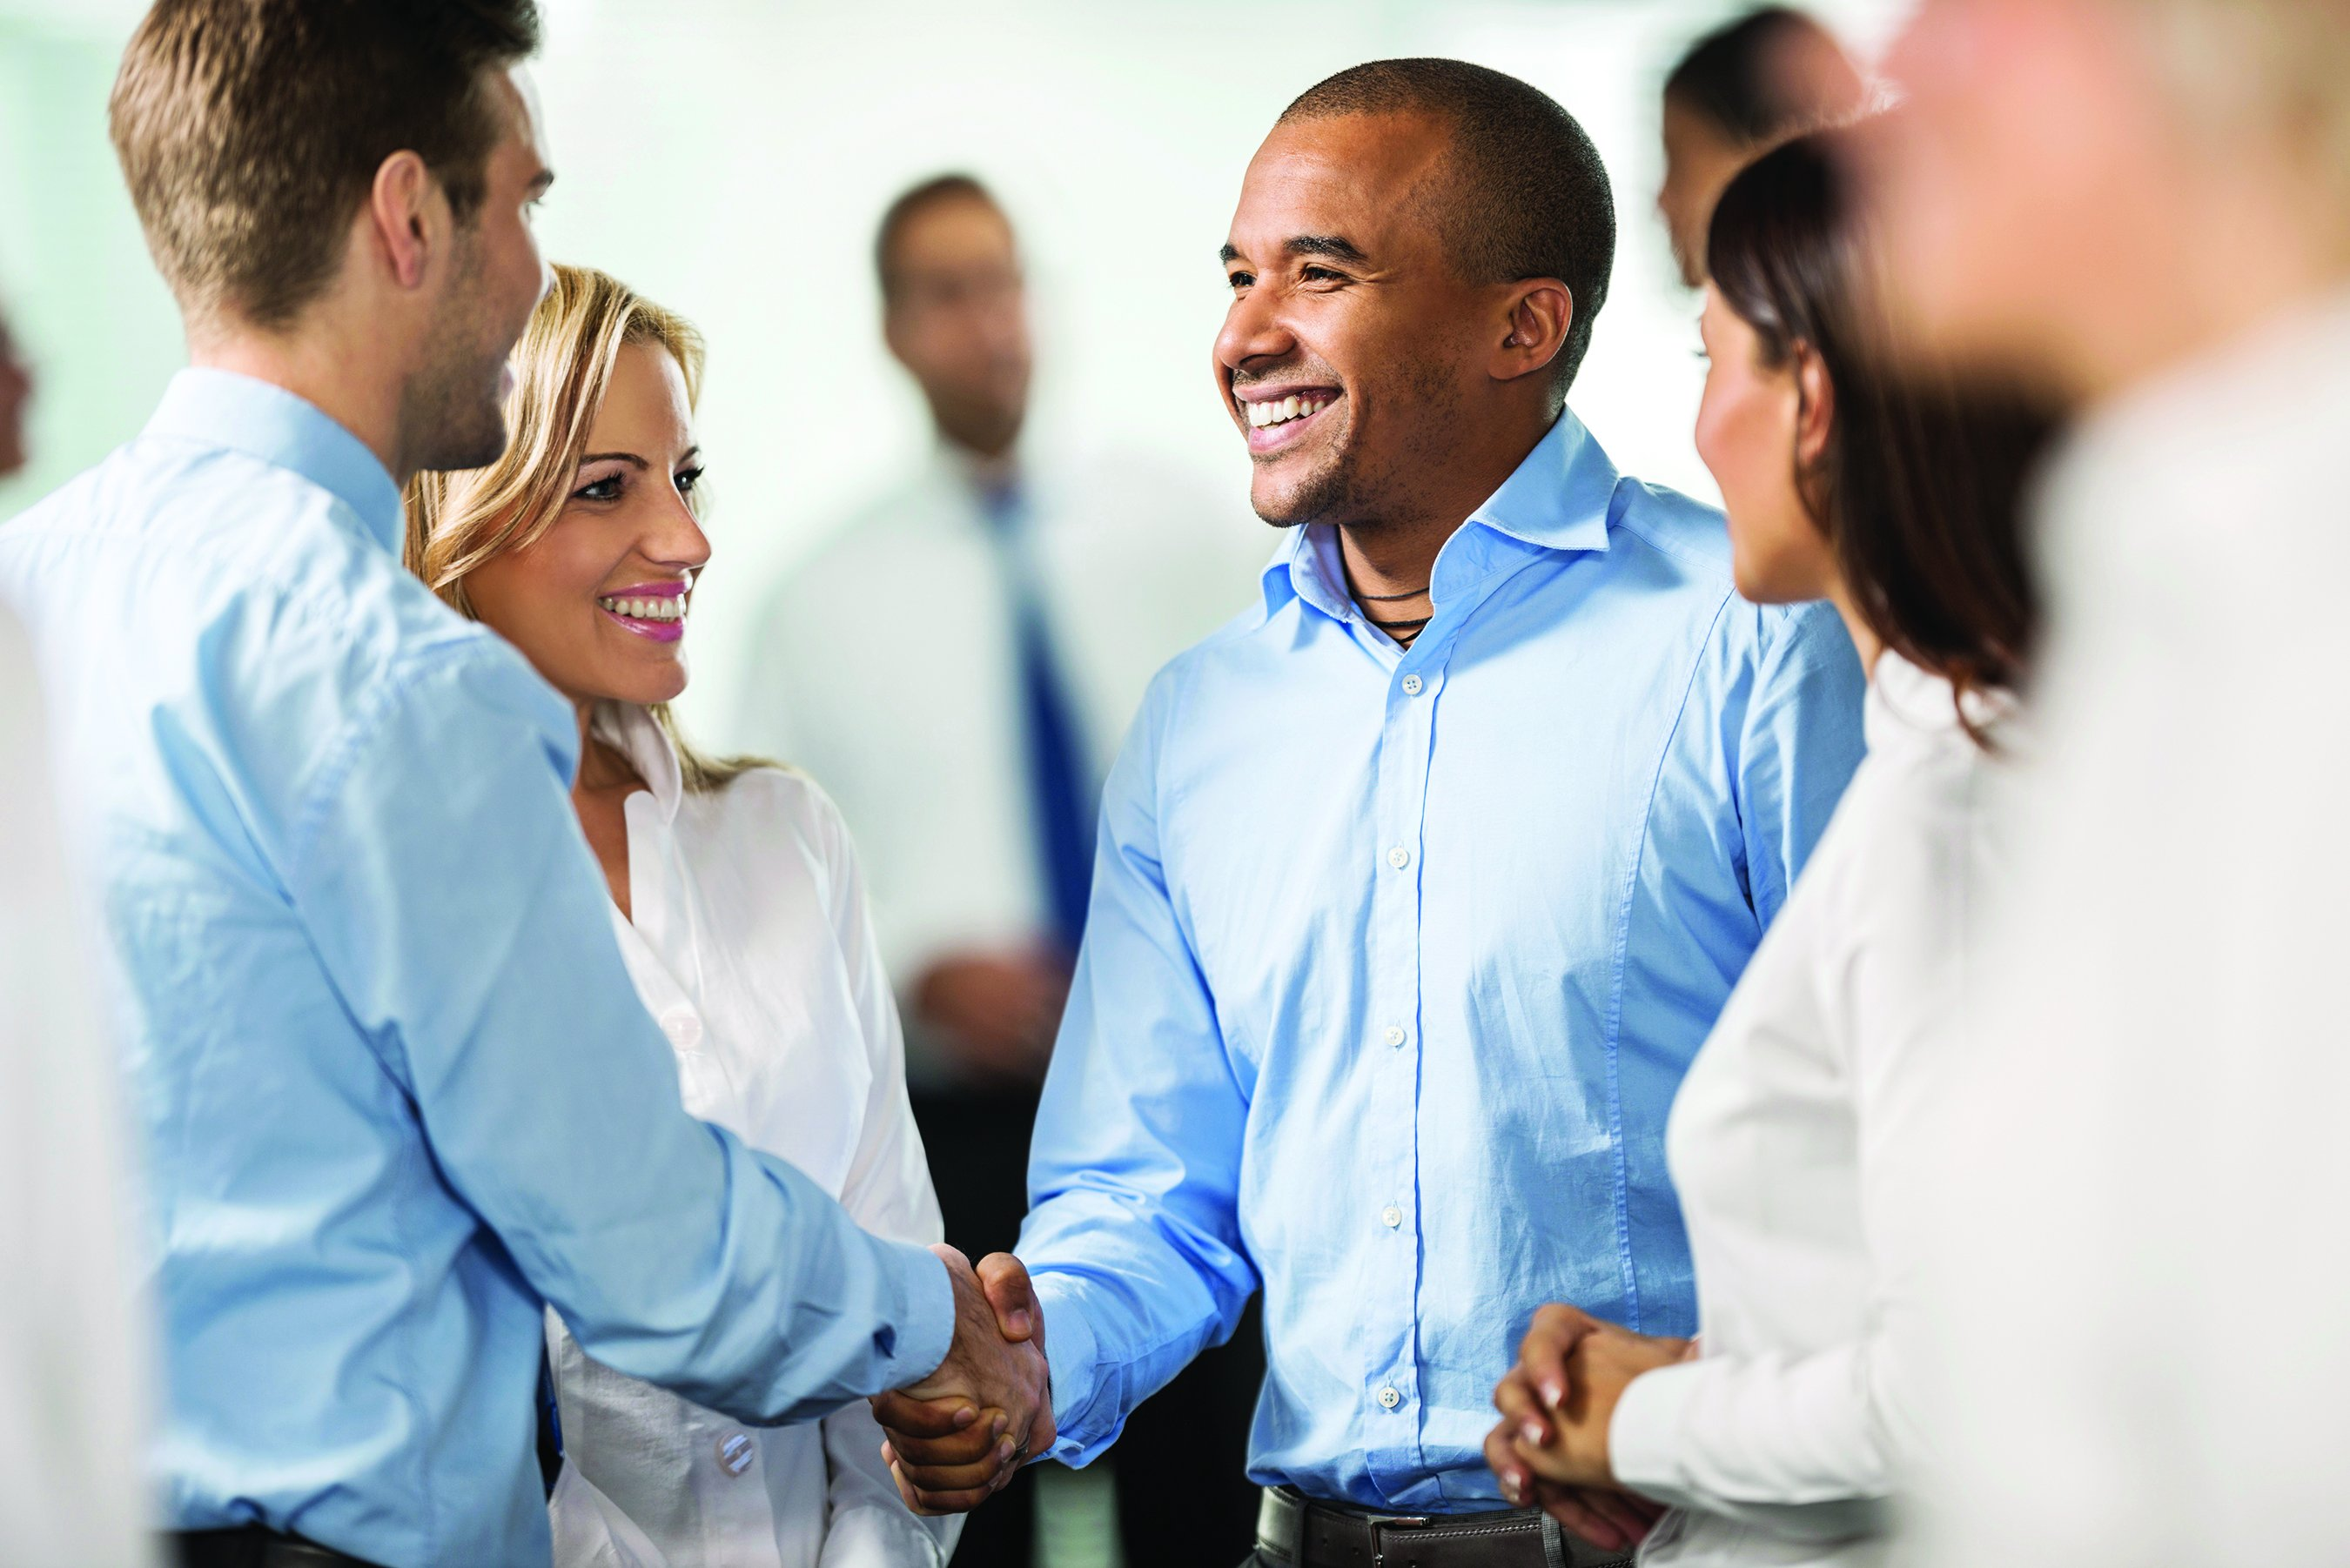 Two businessmen closing the deal by shaking hands. Their colleagues are around them. [url=http://www.istockphoto.com/search/lightbox/9786738][img]http://dl.dropbox.com/u/40117171/group.jpg[/img][/url] [url=http://www.istockphoto.com/search/lightbox/9786622][img]http://dl.dropbox.com/u/40117171/business.jpg[/img][/url]